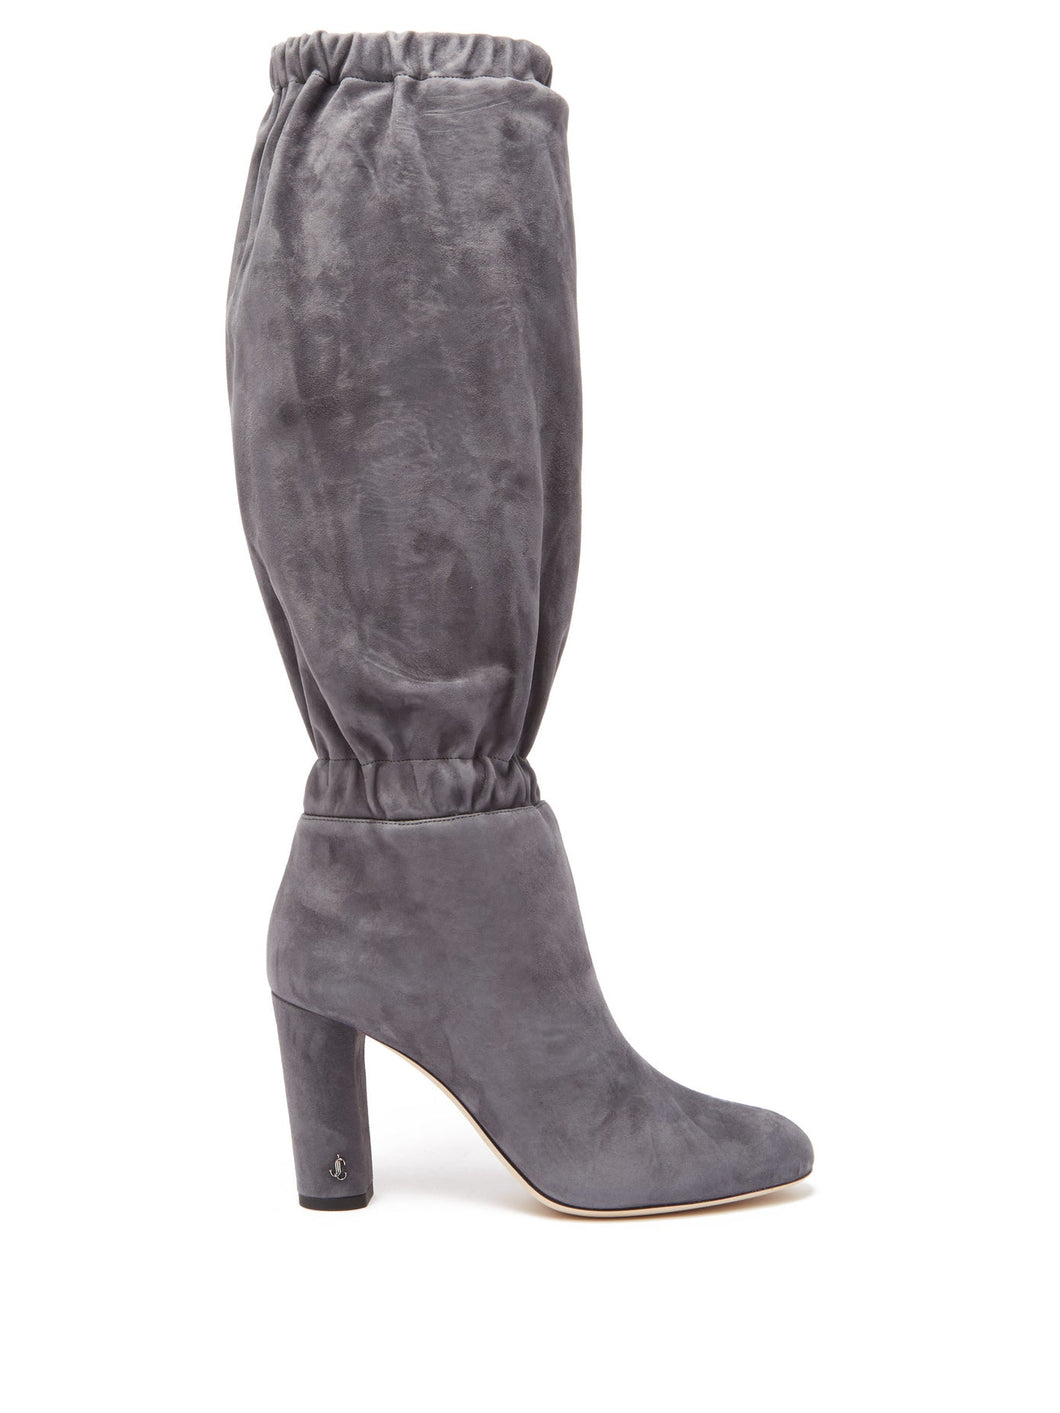 Maxyn 85 knee-high suede boots